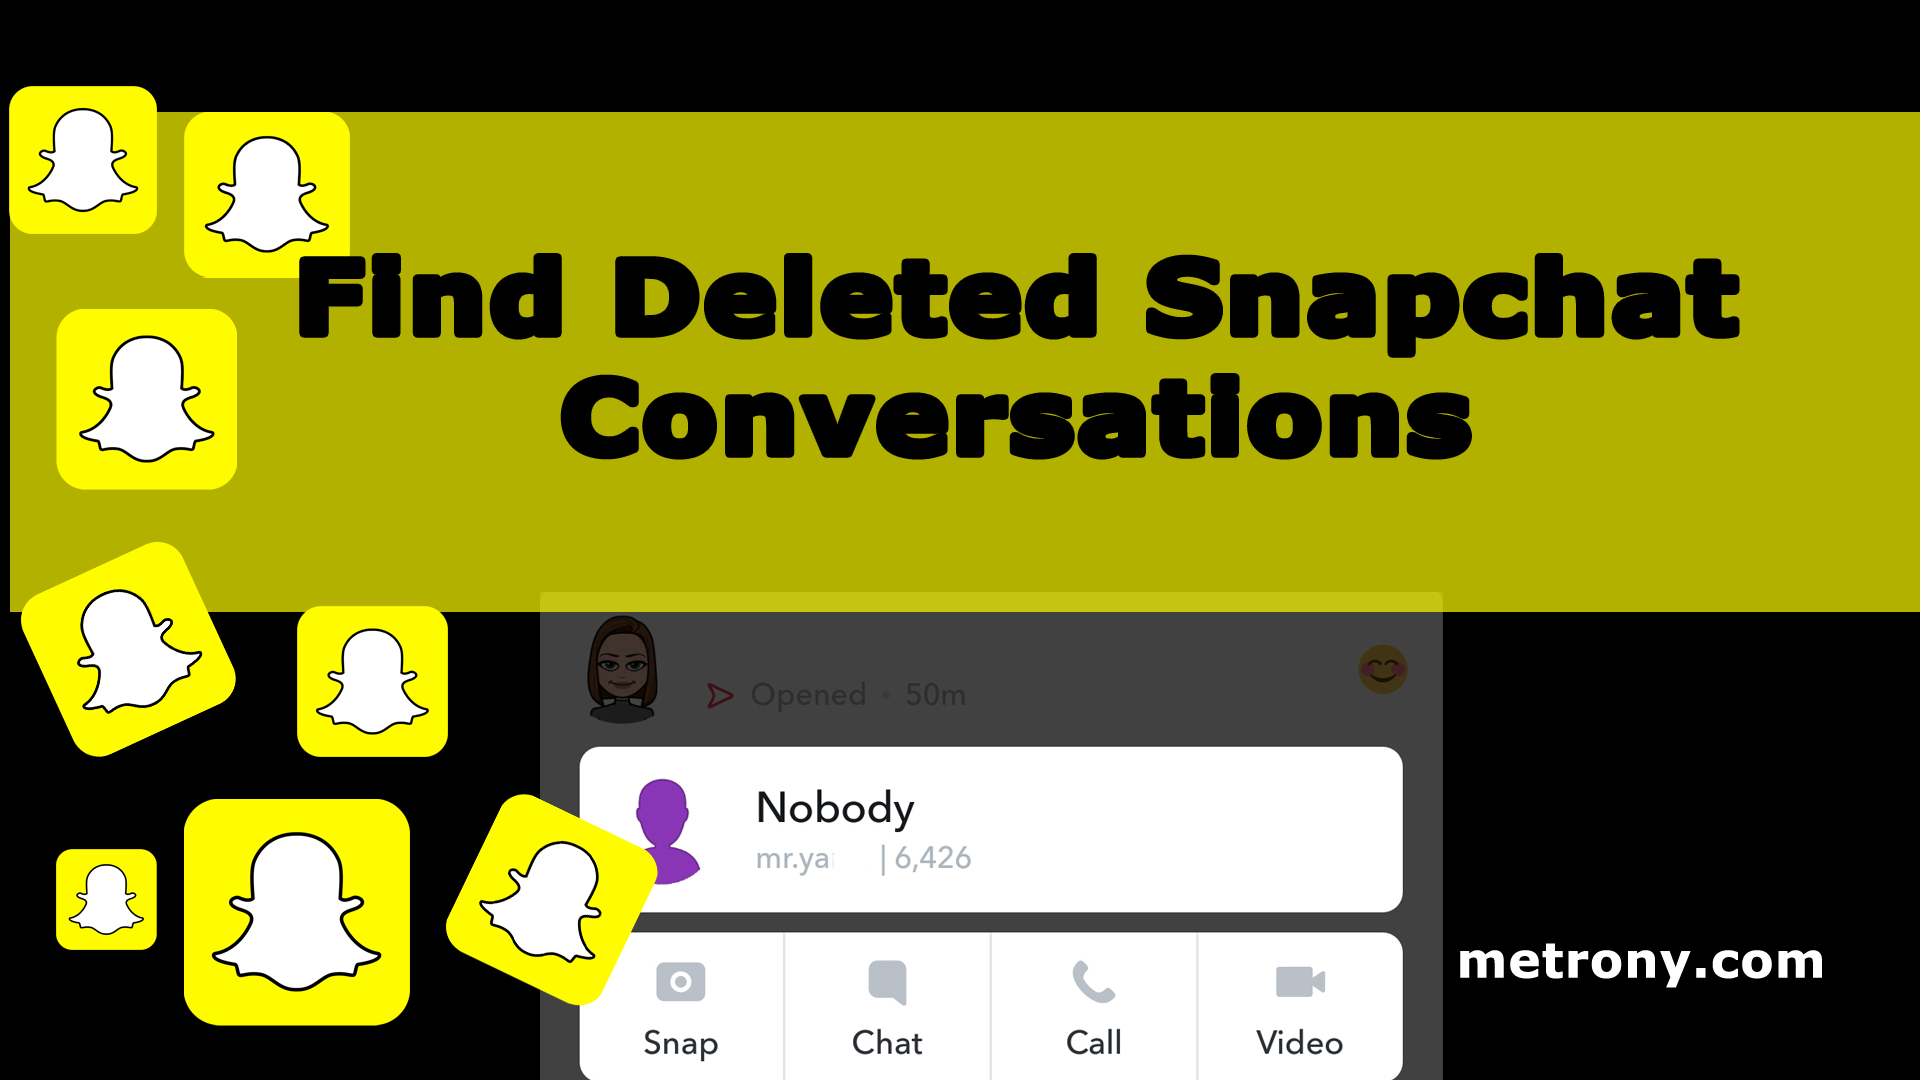 Find Deleted Snapchat Conversations - METRONY.COM